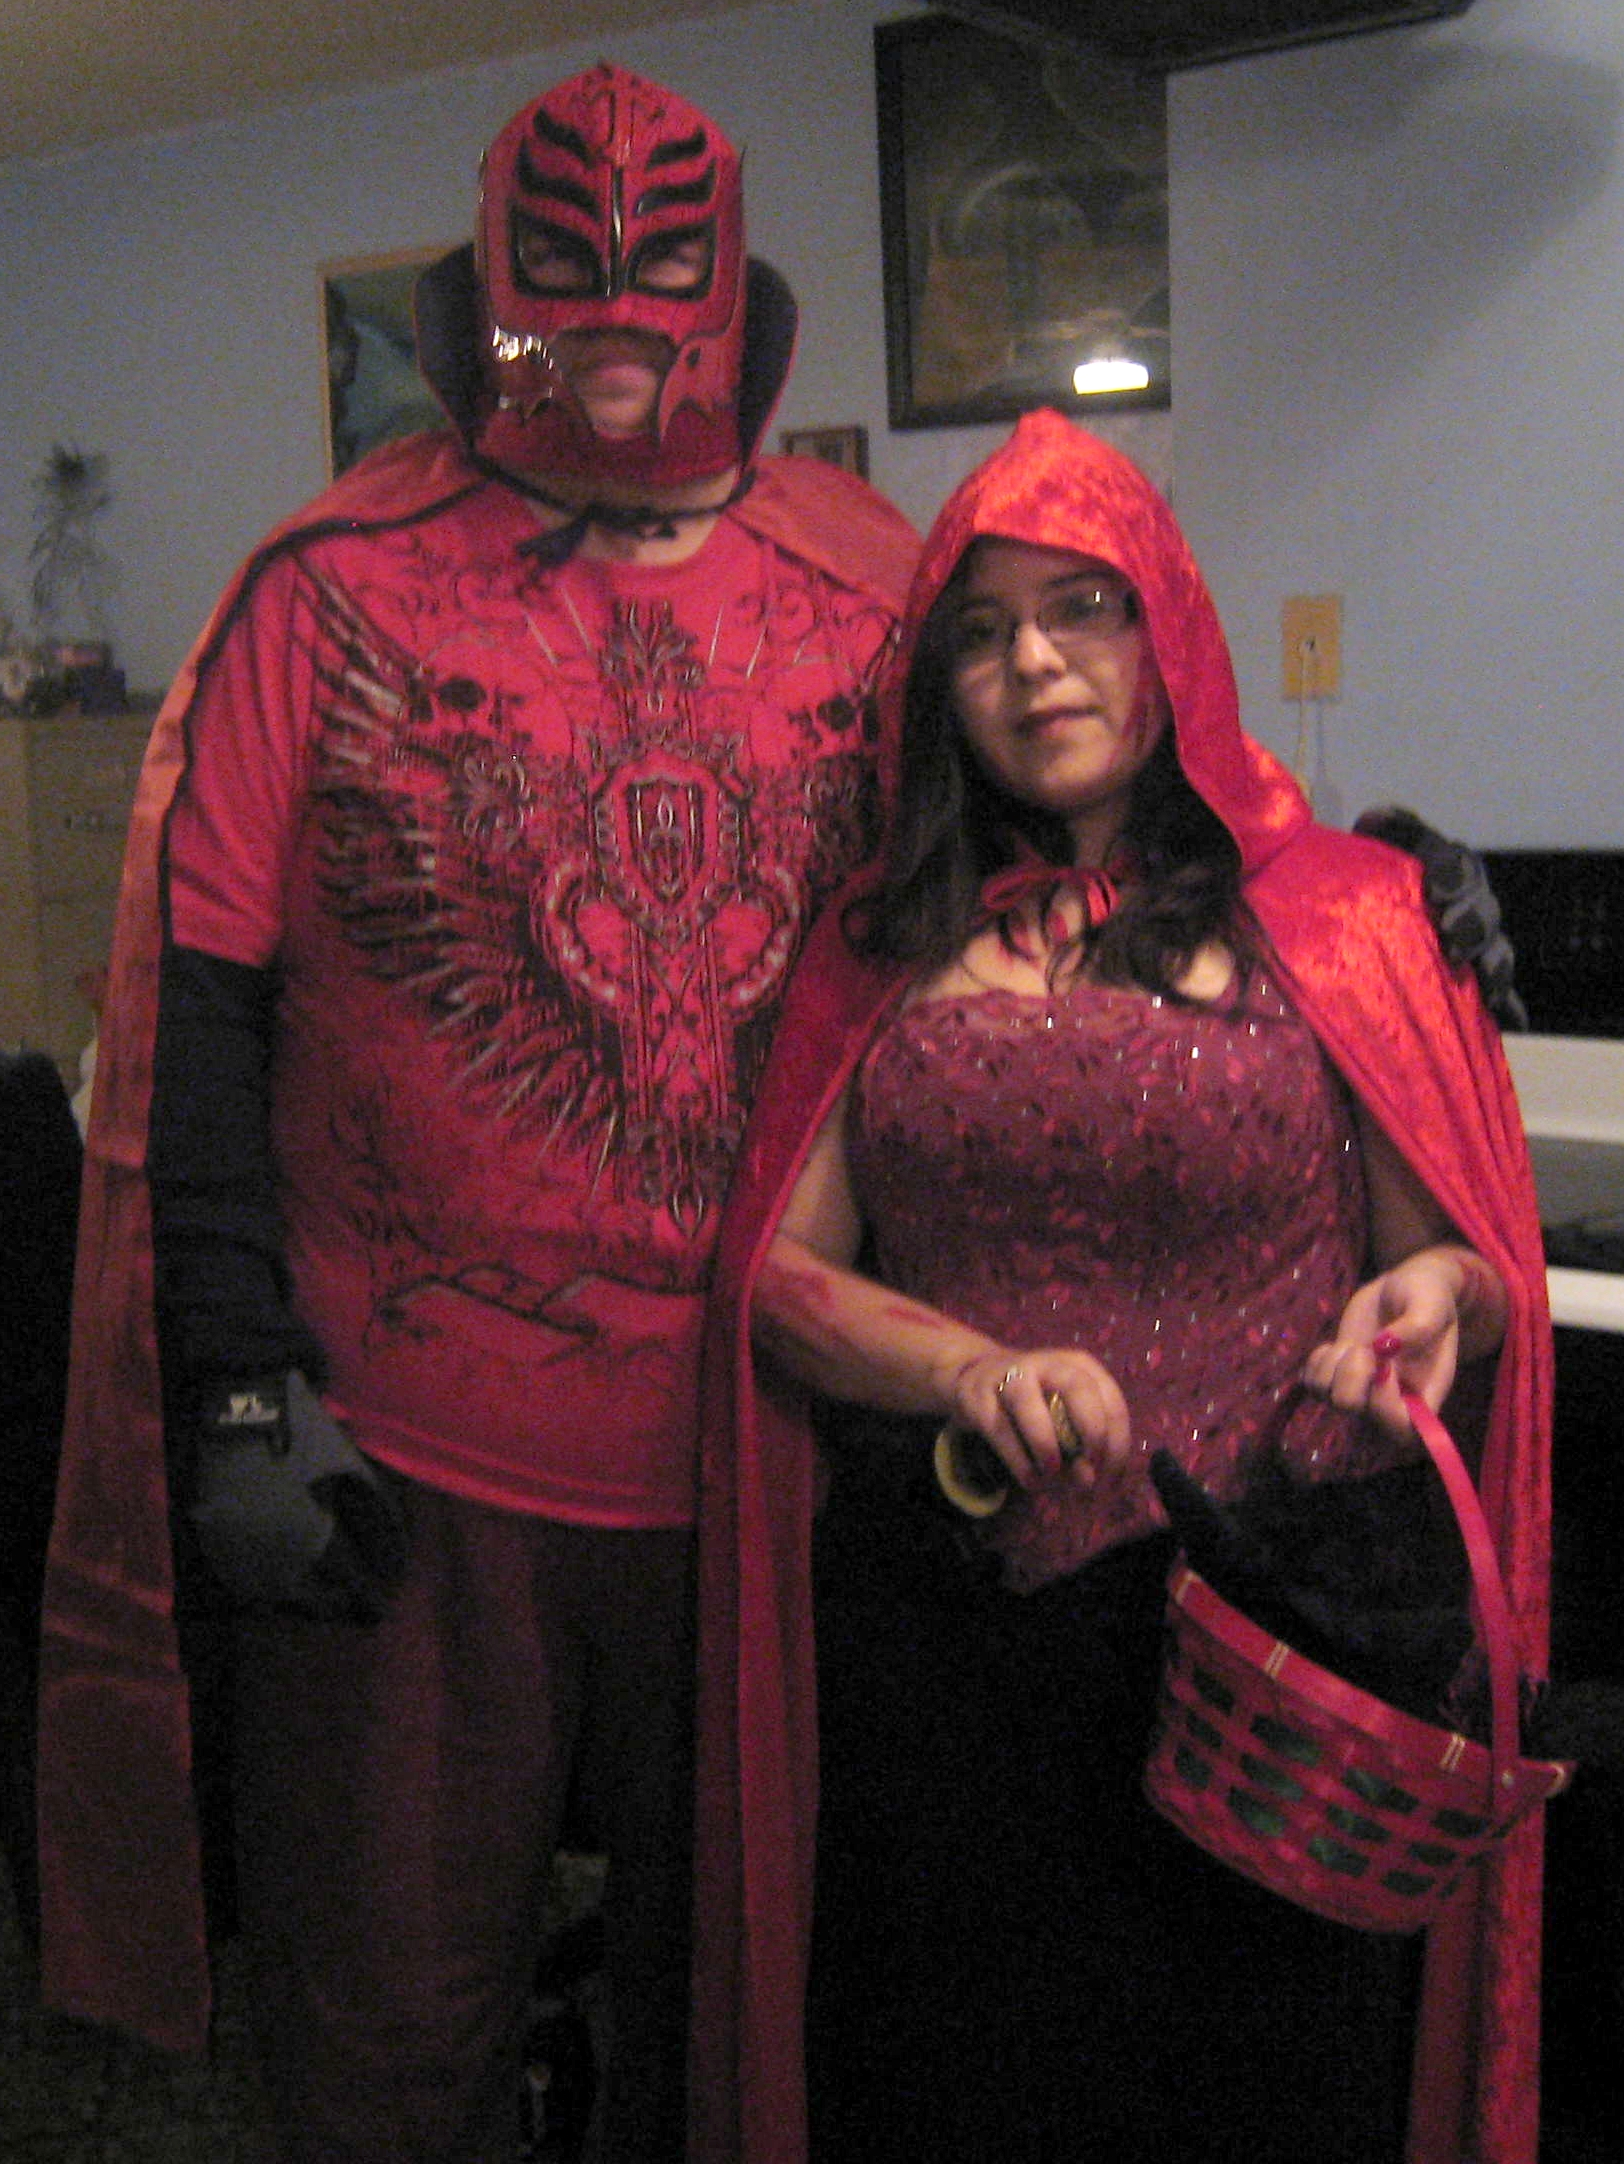 Happy Halloween from Red Spider and Red Riding Hood